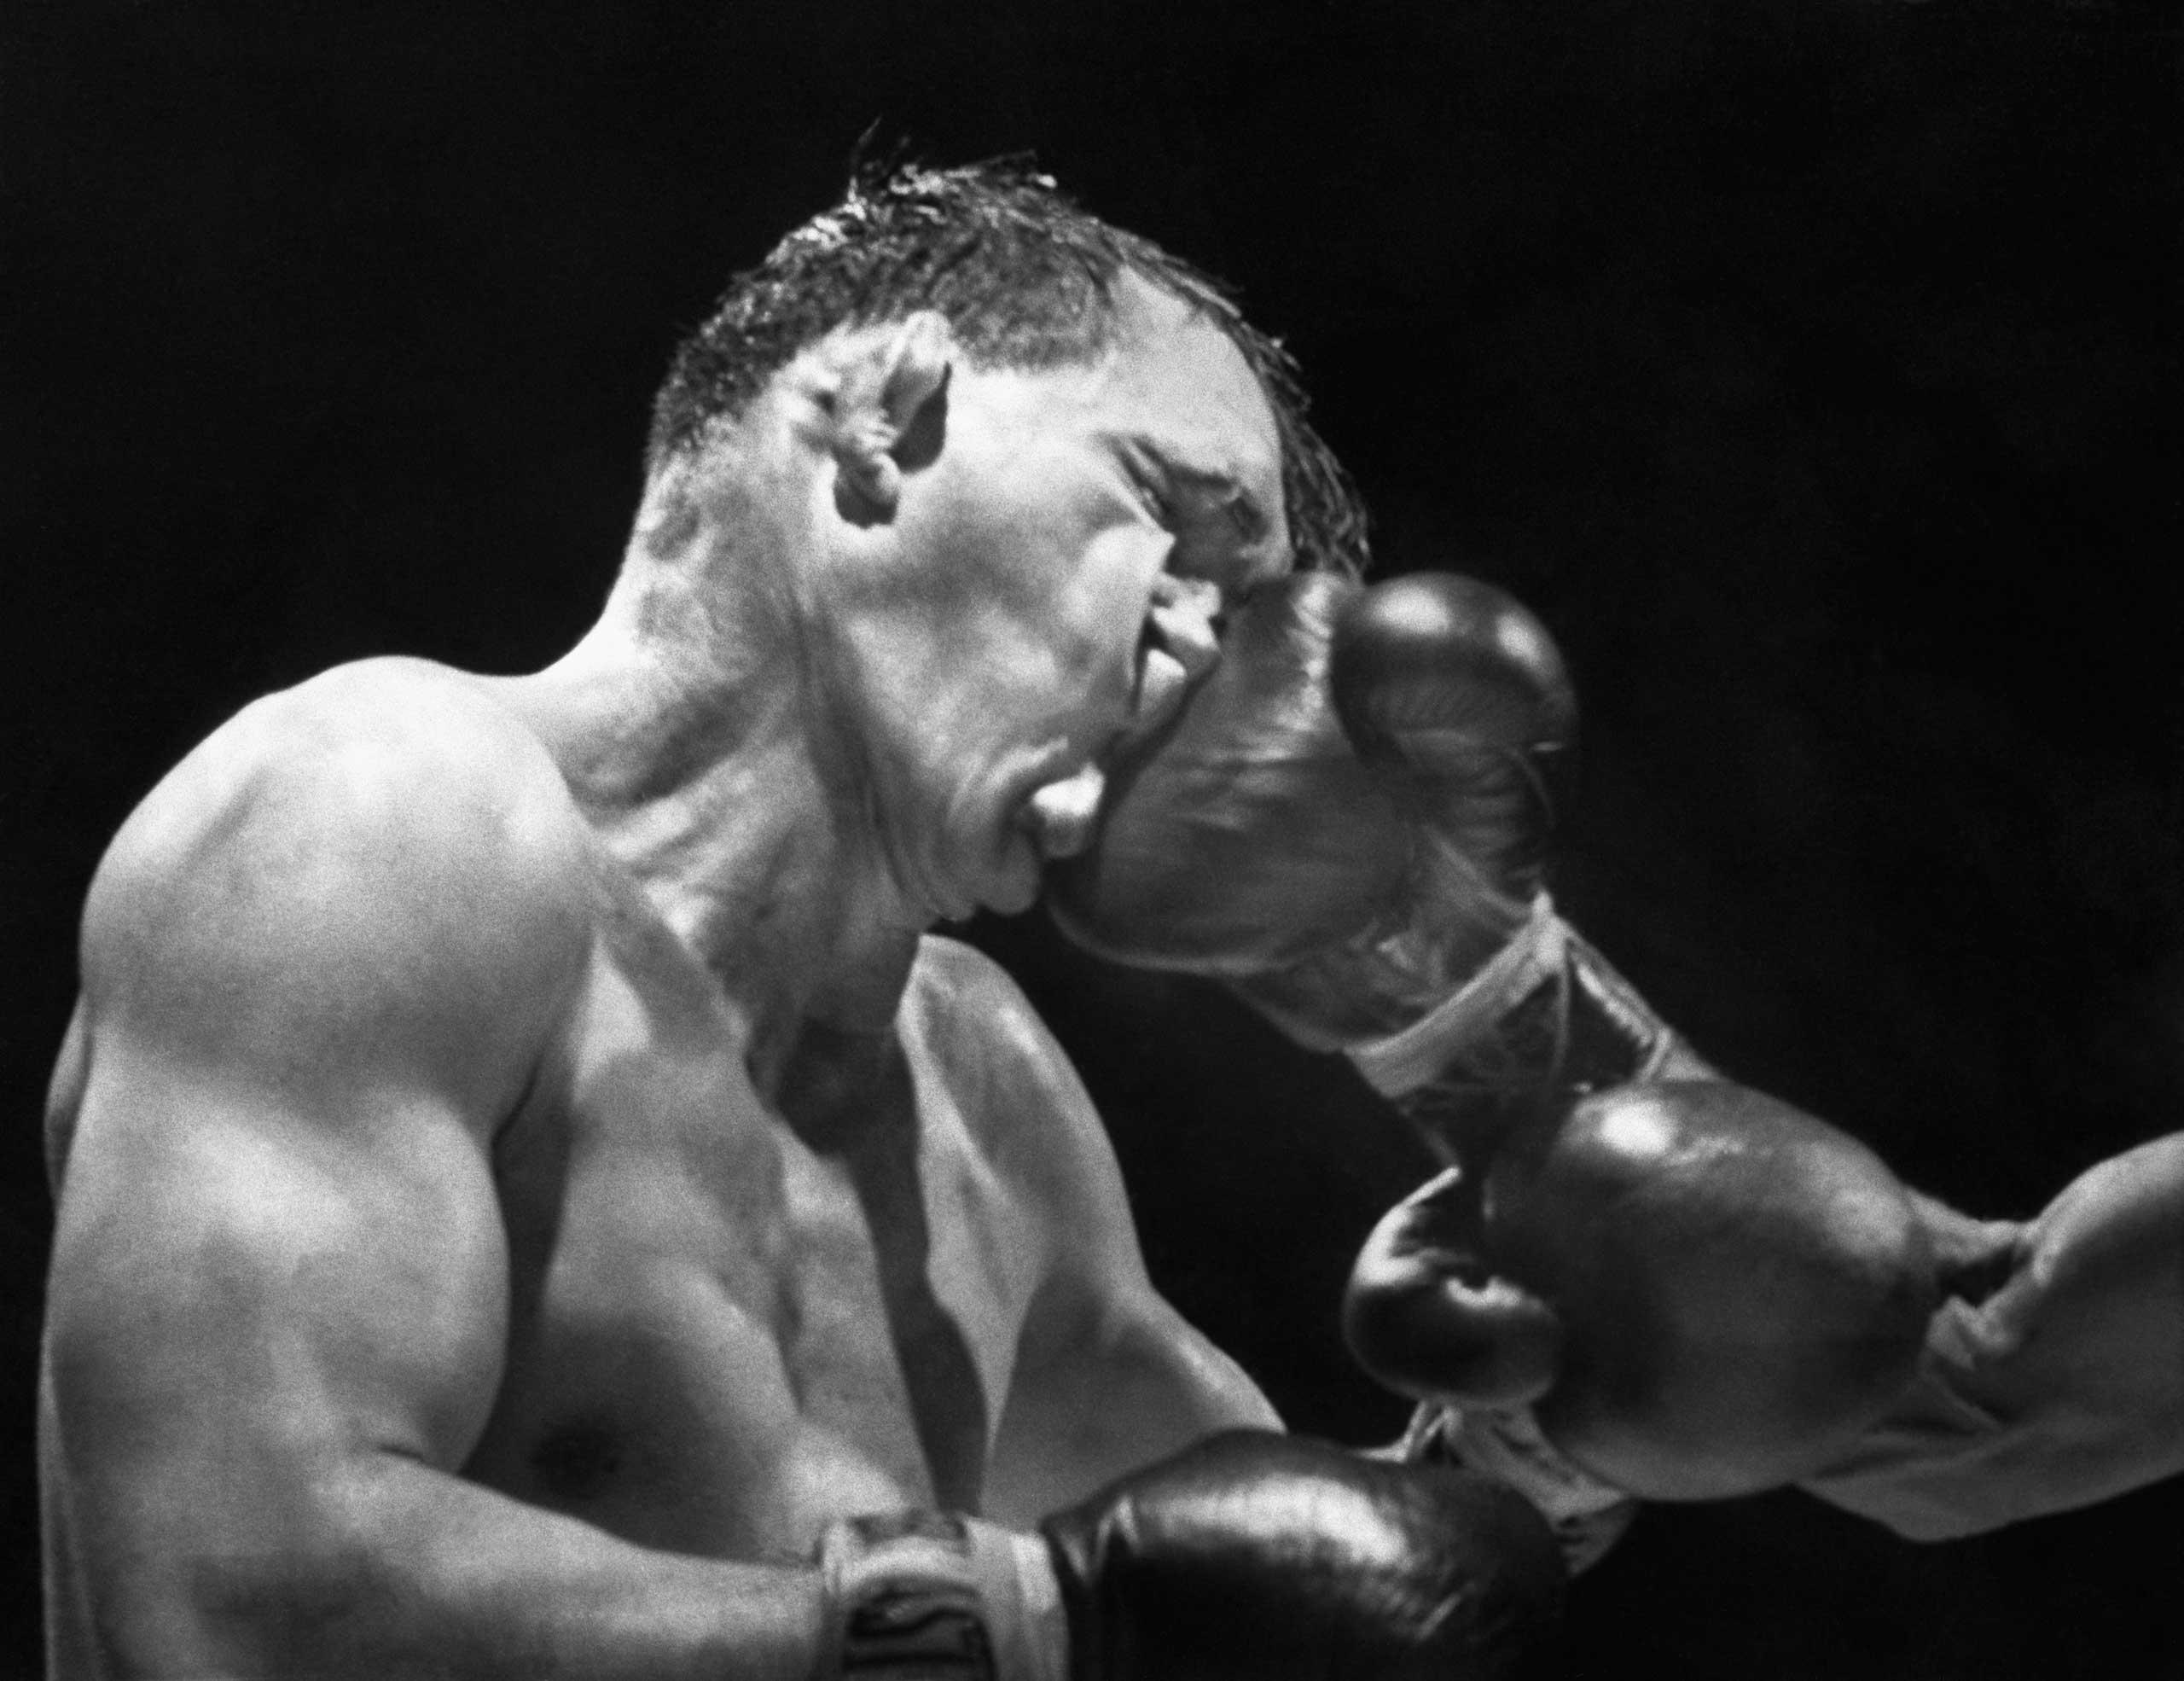 Gene Fullmer receives a crushing right from Neal Rivers during their 10-round bout at Madison Square Garden. Fullmer, a former middleweight champion, would go on to win the bout by a majority decision. Nov. 15, 1957.